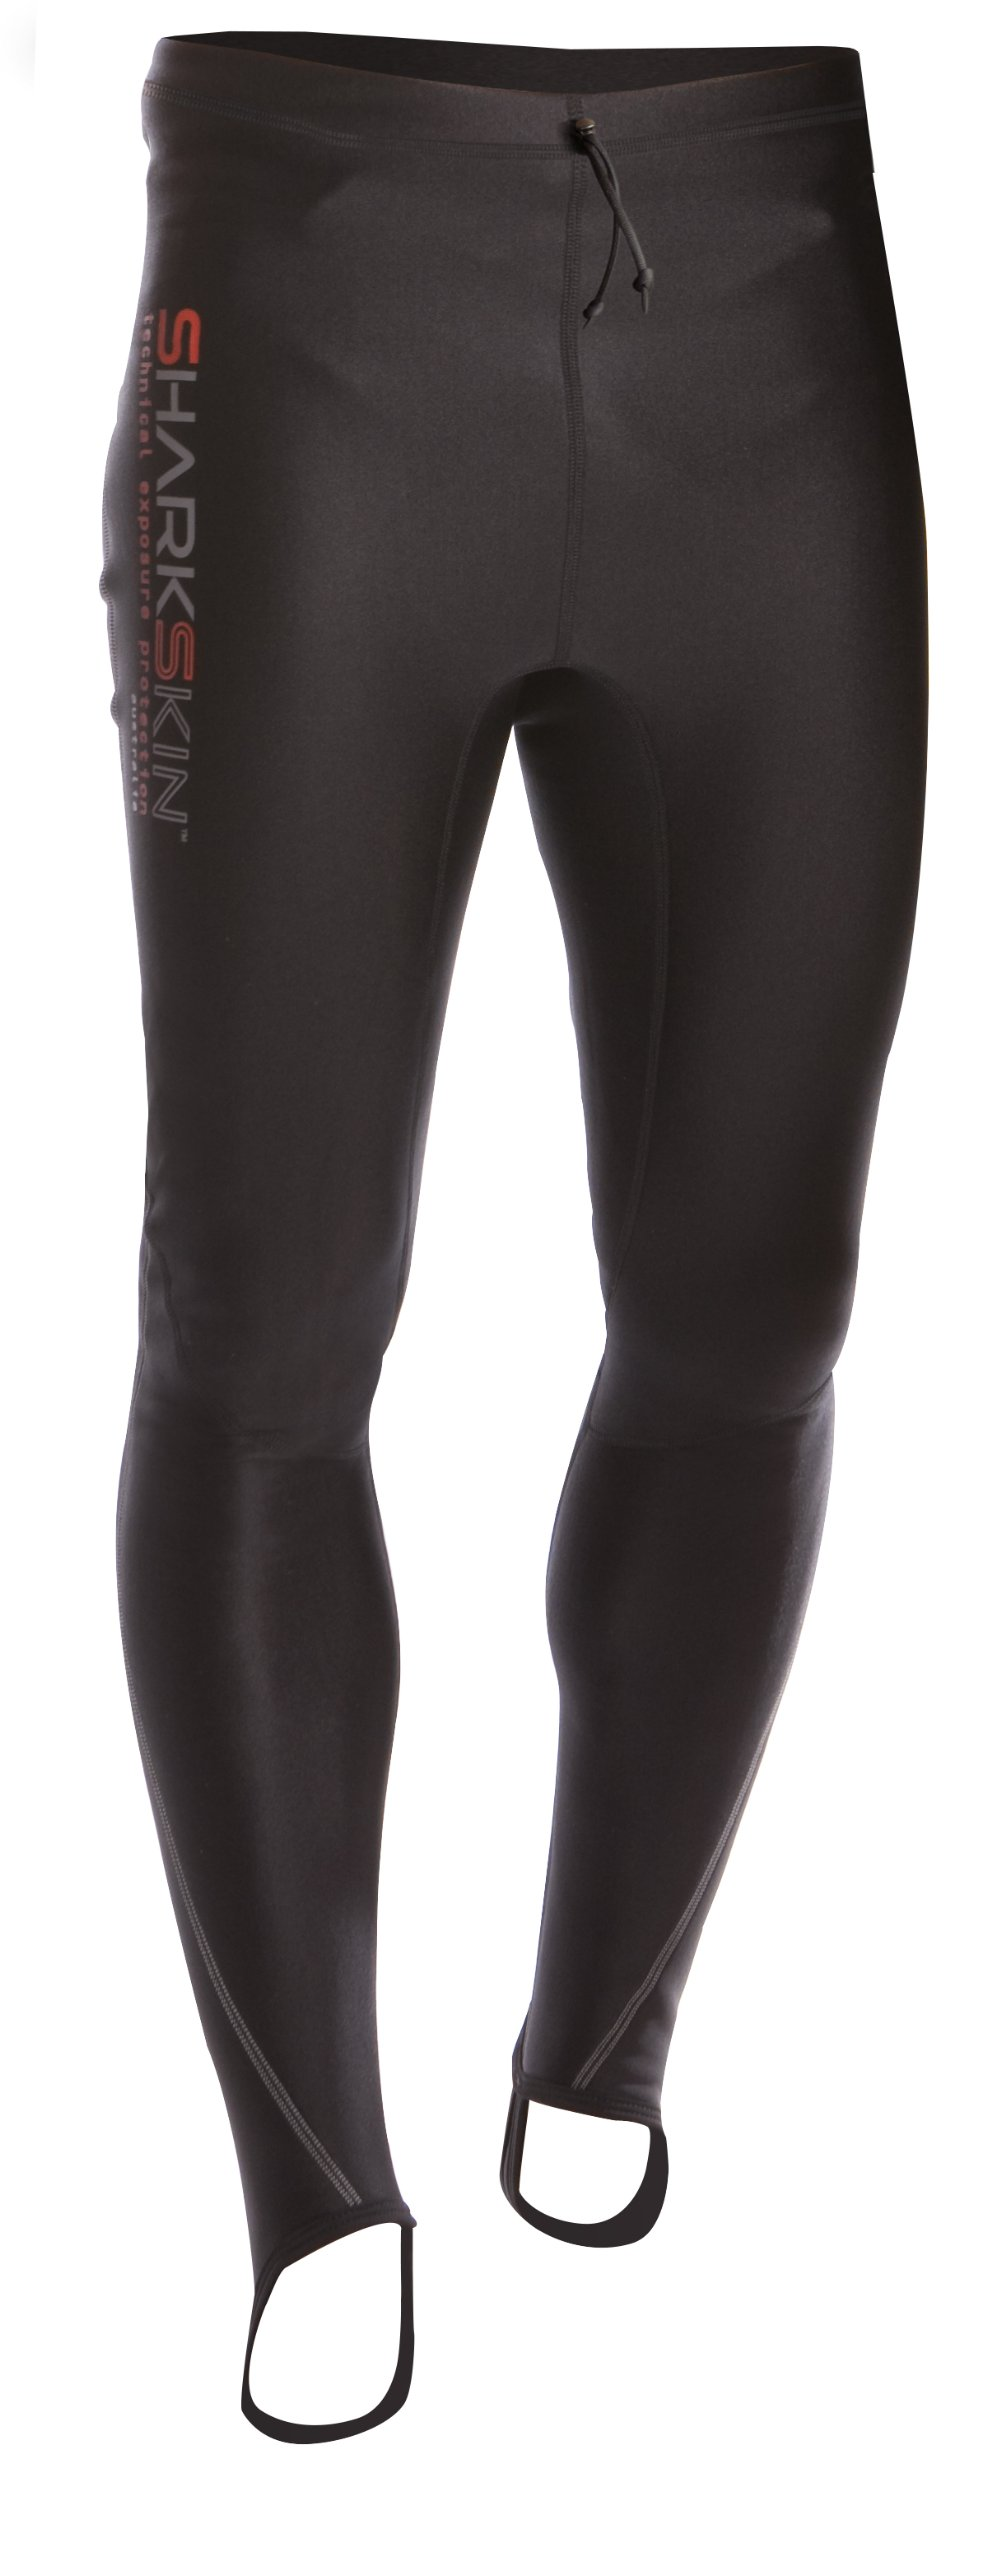 Sharkskin Mens Chillproof Wetsuit Long Pants Size - Large by Sharkskin (Image #1)